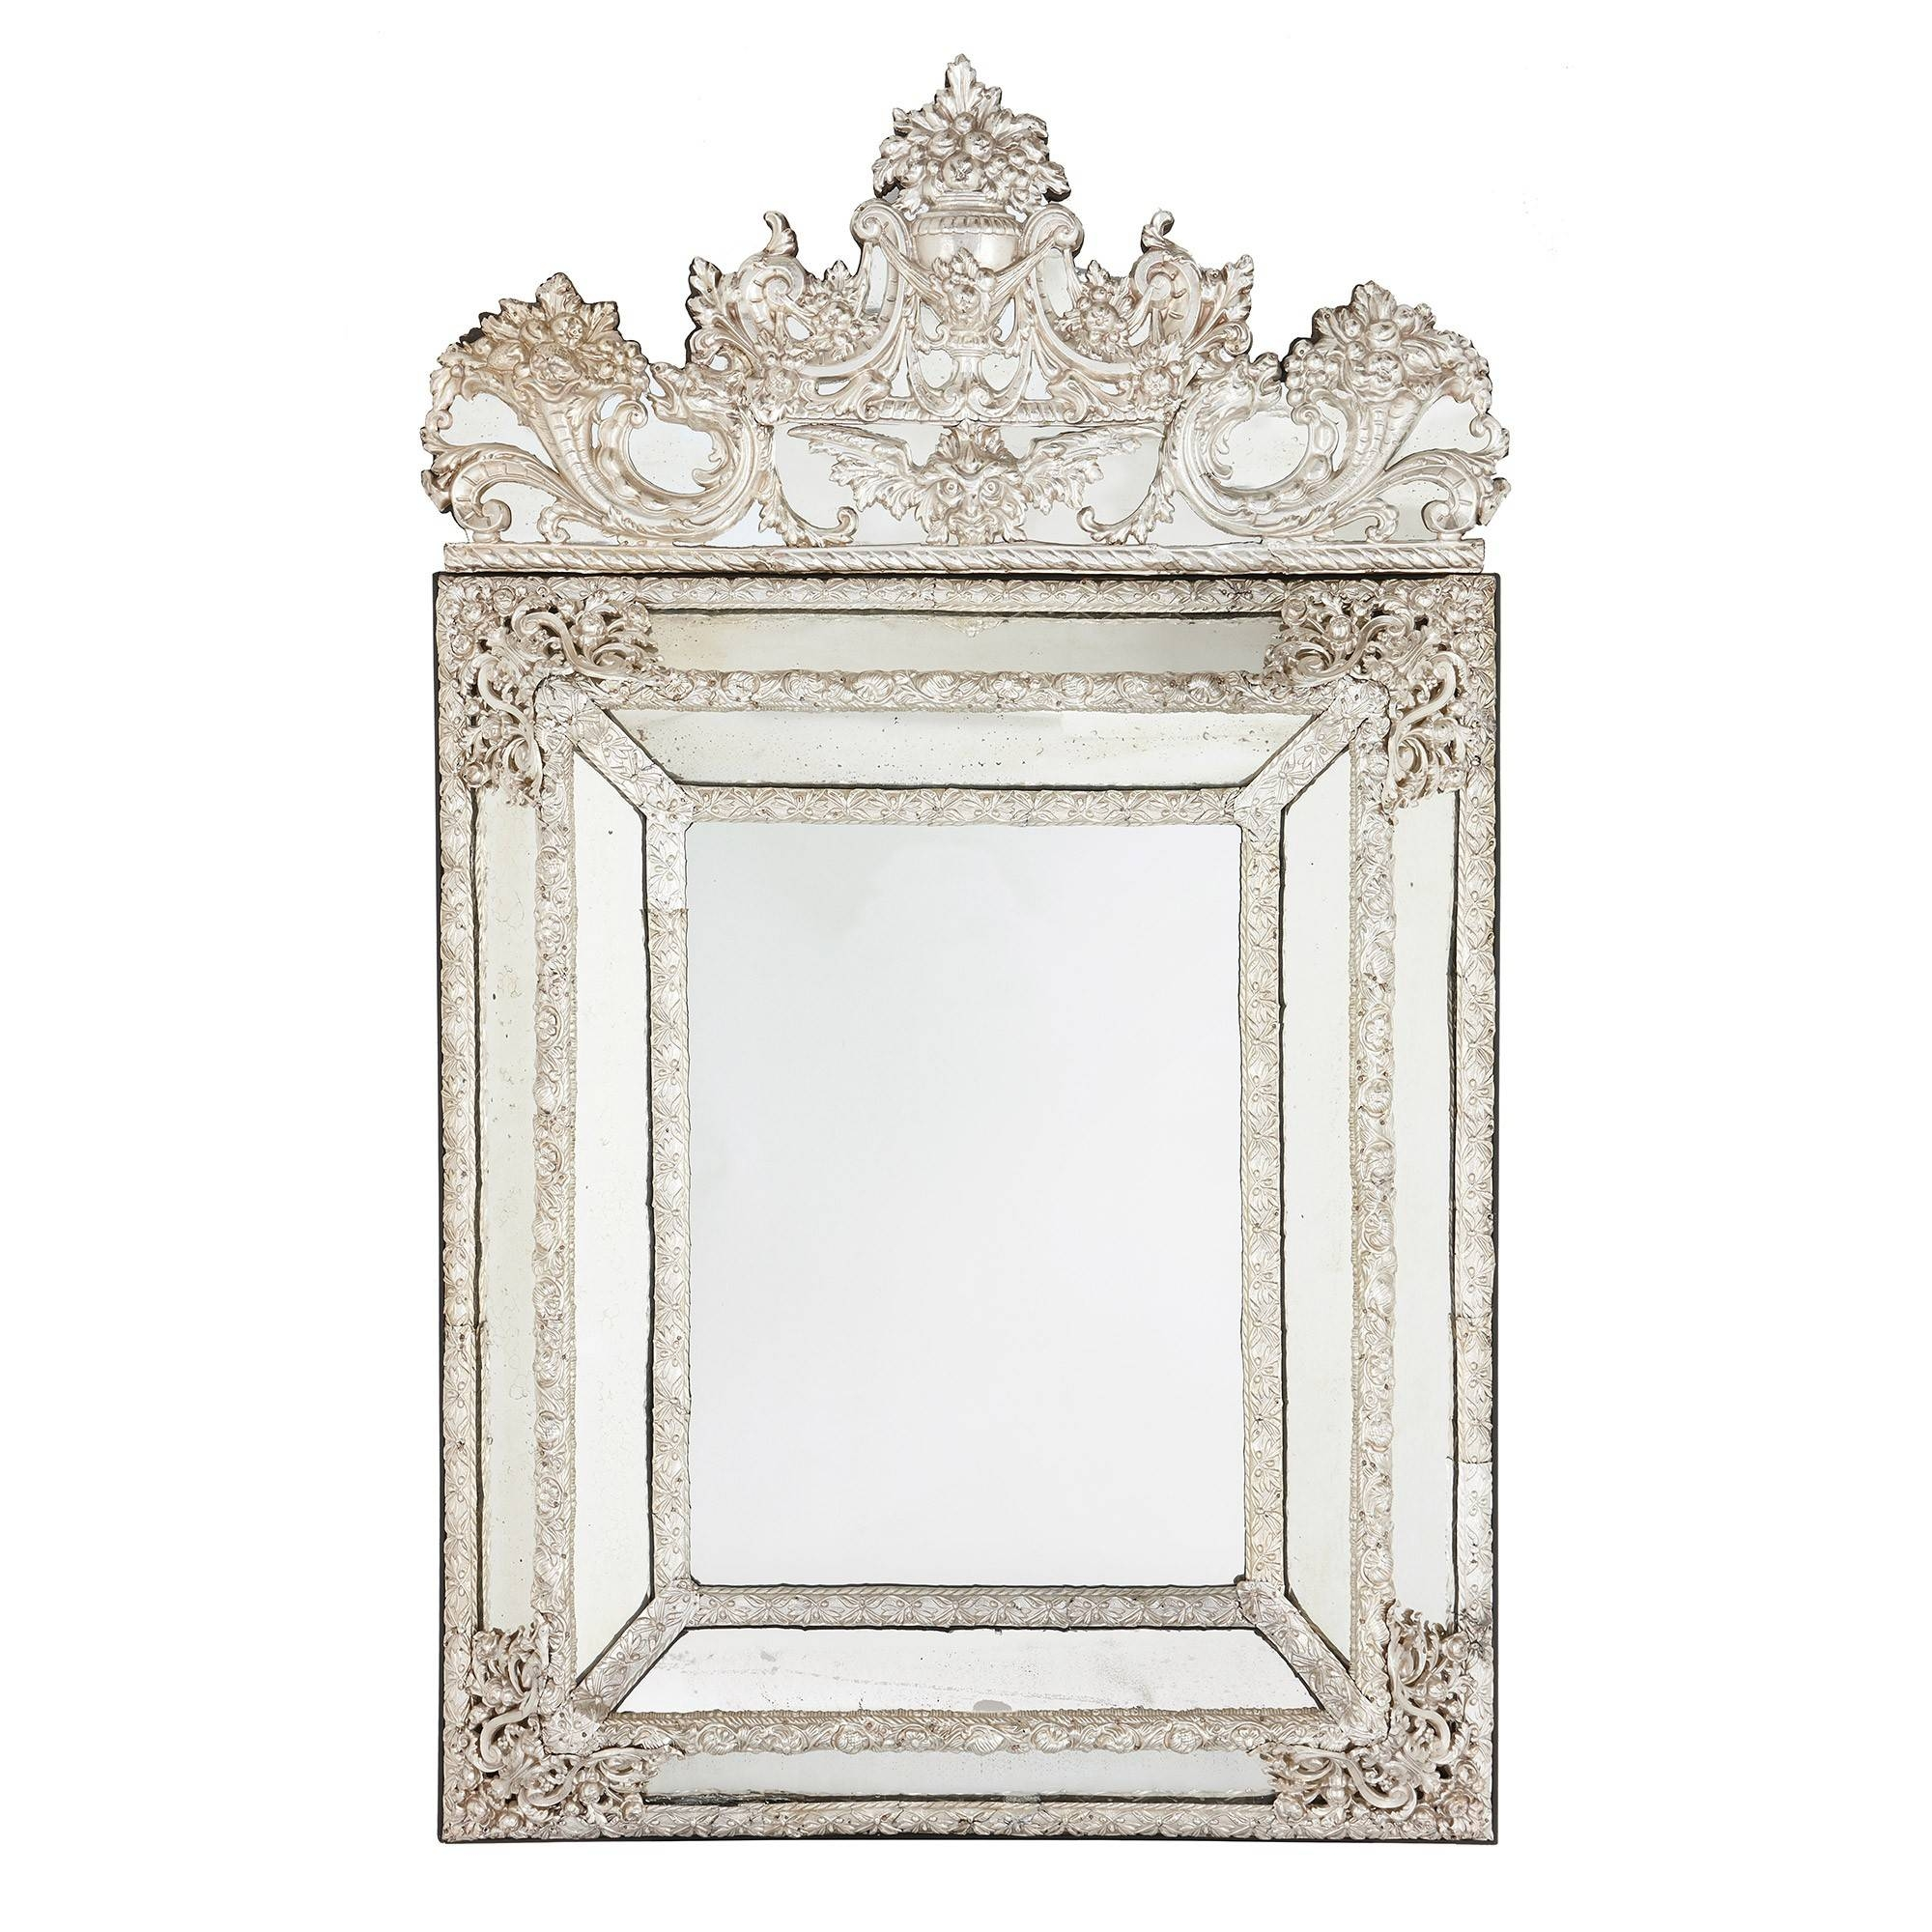 Antique Mirrors For Sale In London | Mayfair Gallery regarding Antique Mirrors London (Image 10 of 25)